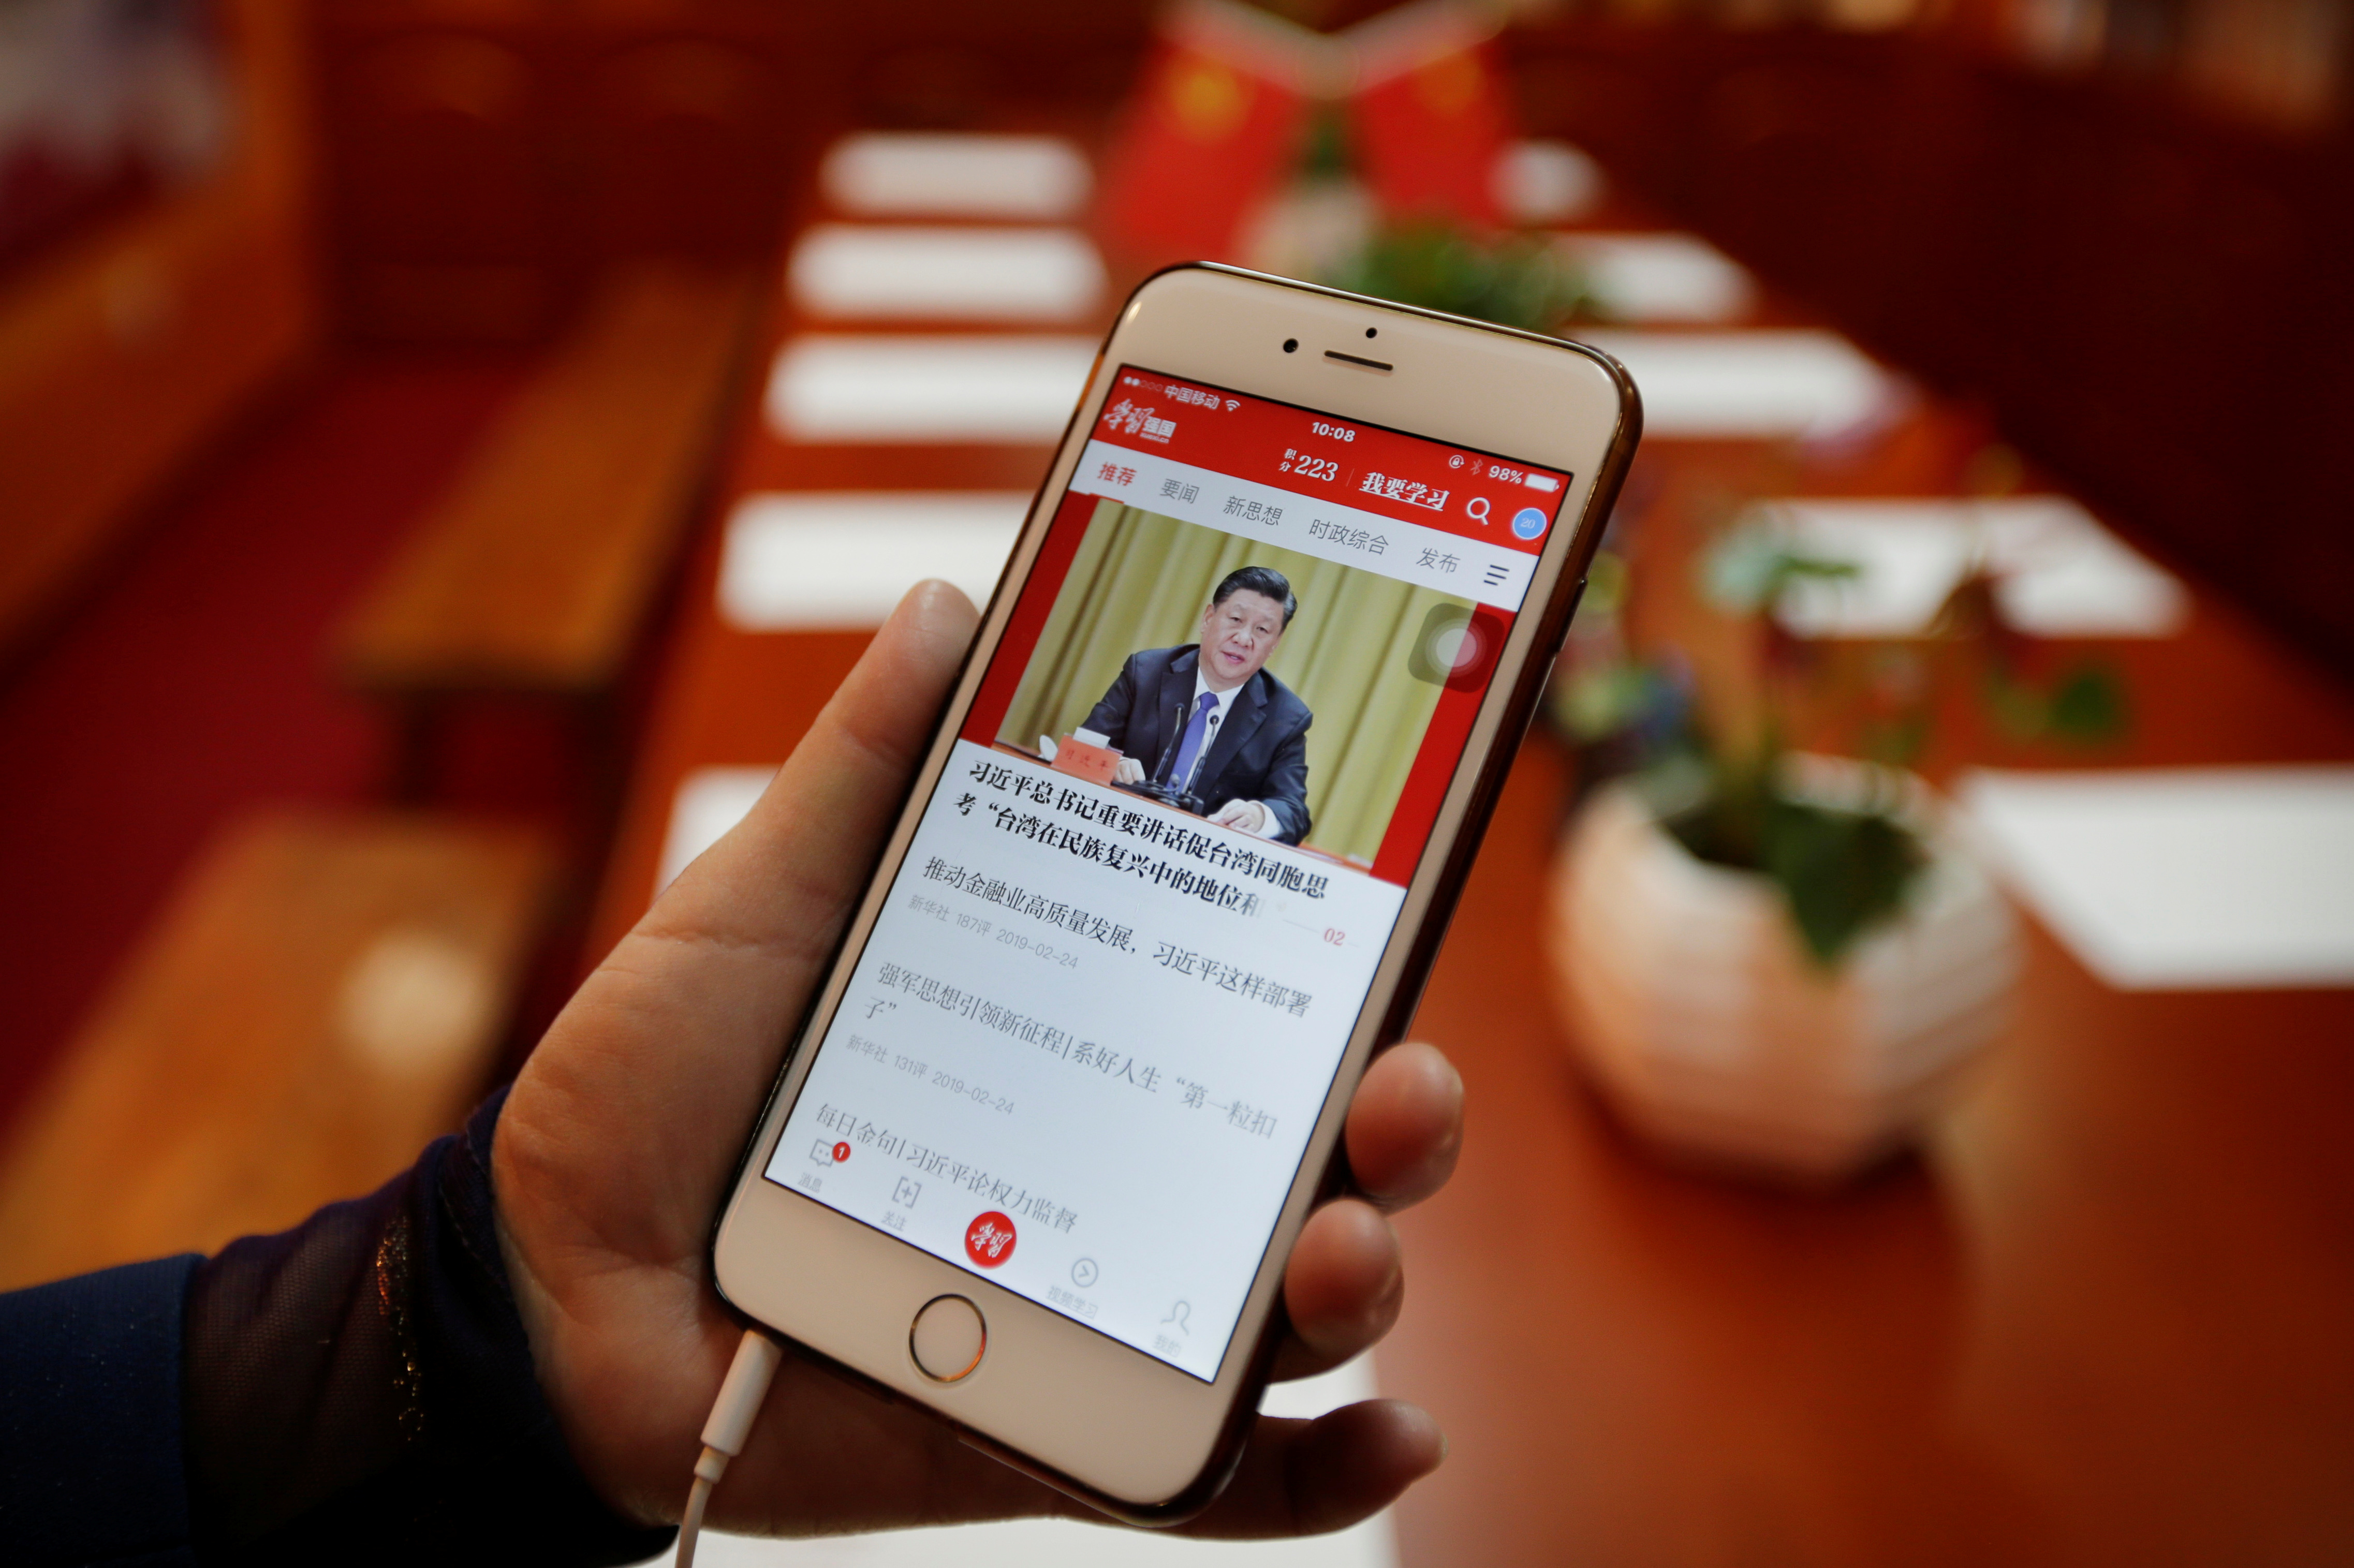 Cheng Hong, Tidal Star Group's communist party secretary, displays an app Xuexi Qiangguo, which literally translates as 'Study to make China strong', before a weekly group study at a party activity room in Beijing, China, February 25, 2019. Picture taken February 25, 2019. REUTERS/Jason Lee - RC1E7F620220